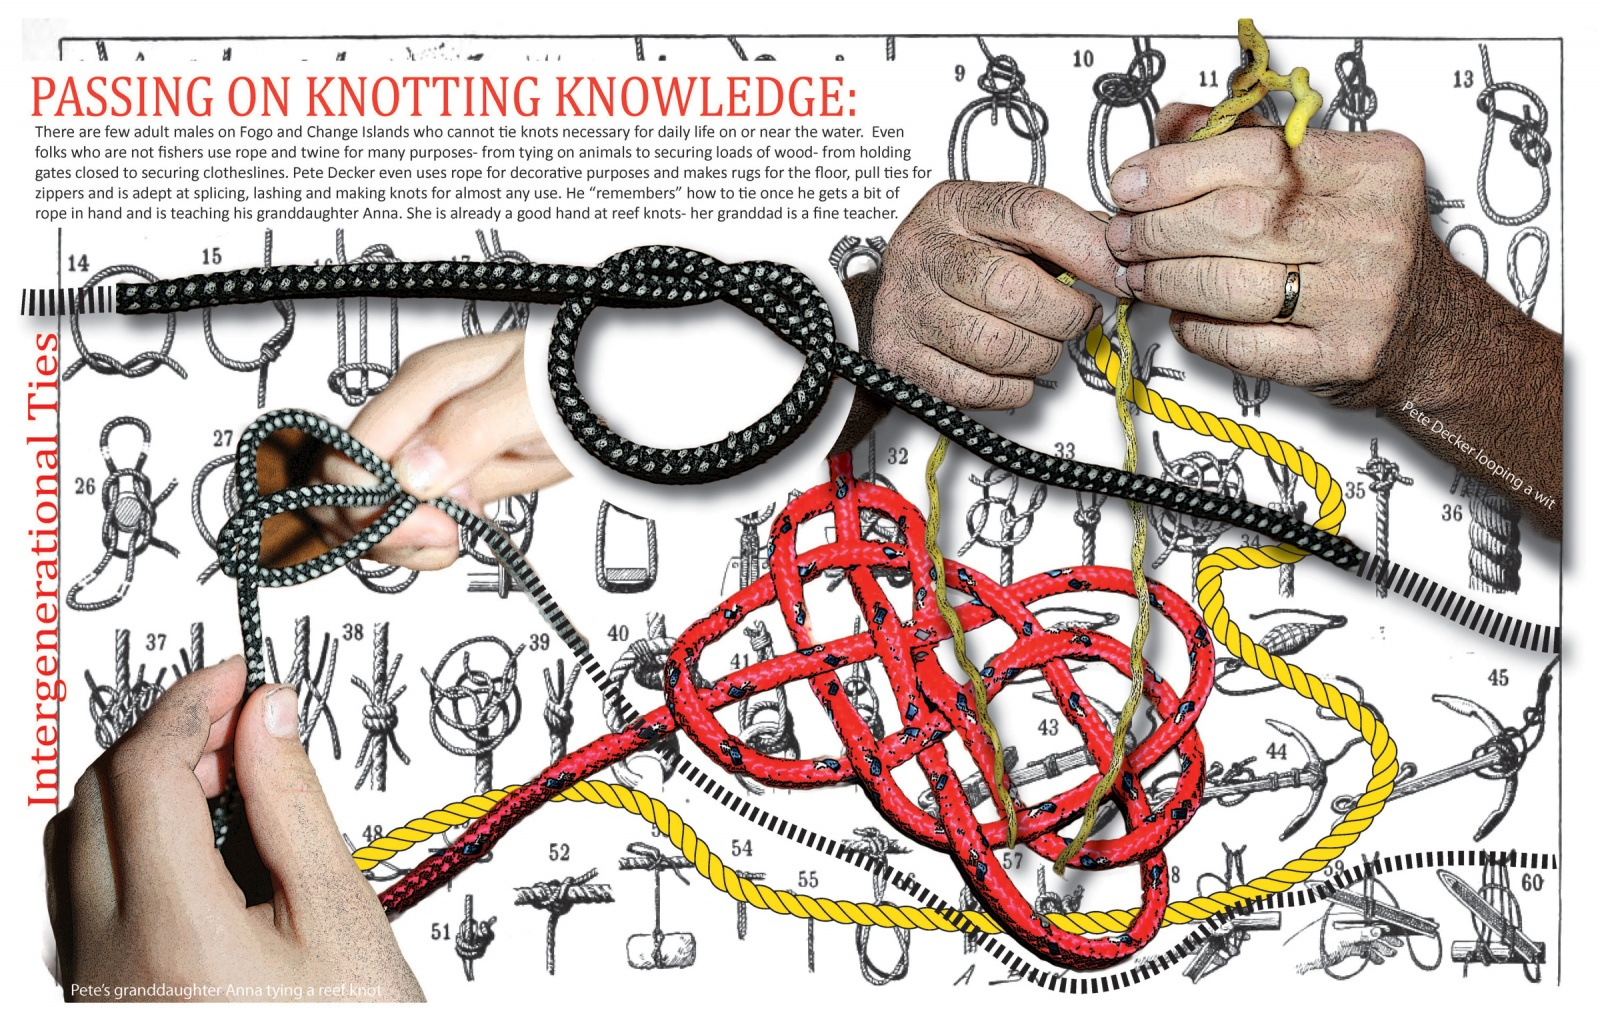 Passing on Knotting Knowledge